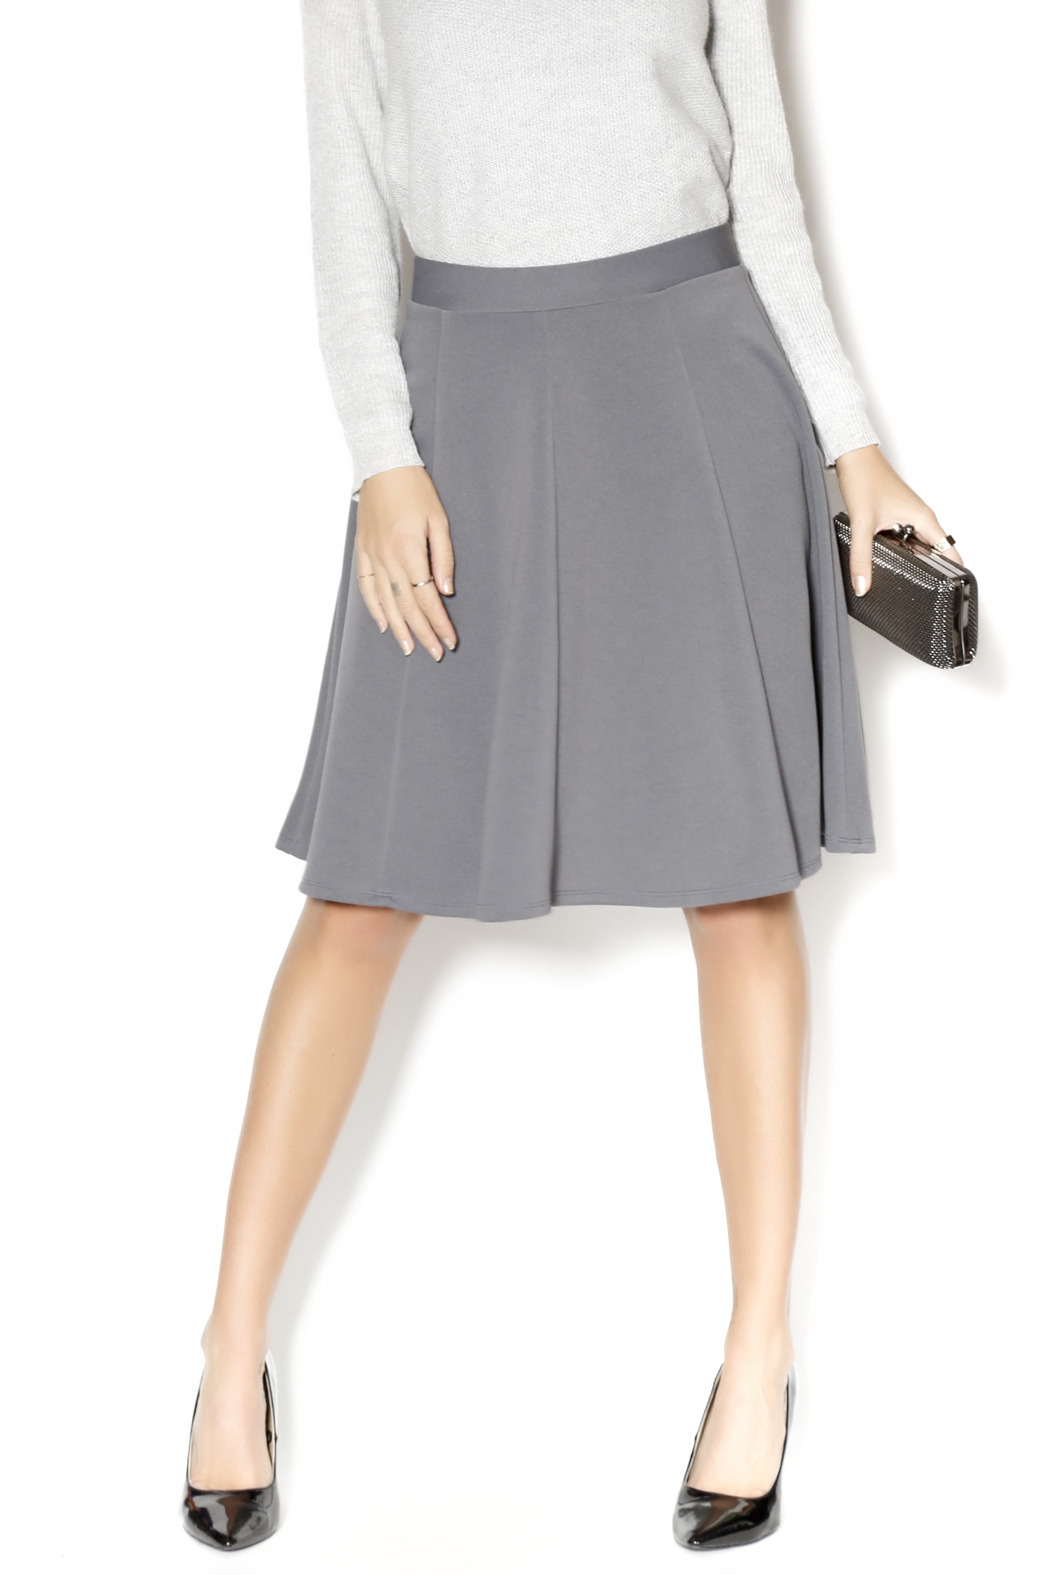 Gray A Line Skirt - Redskirtz